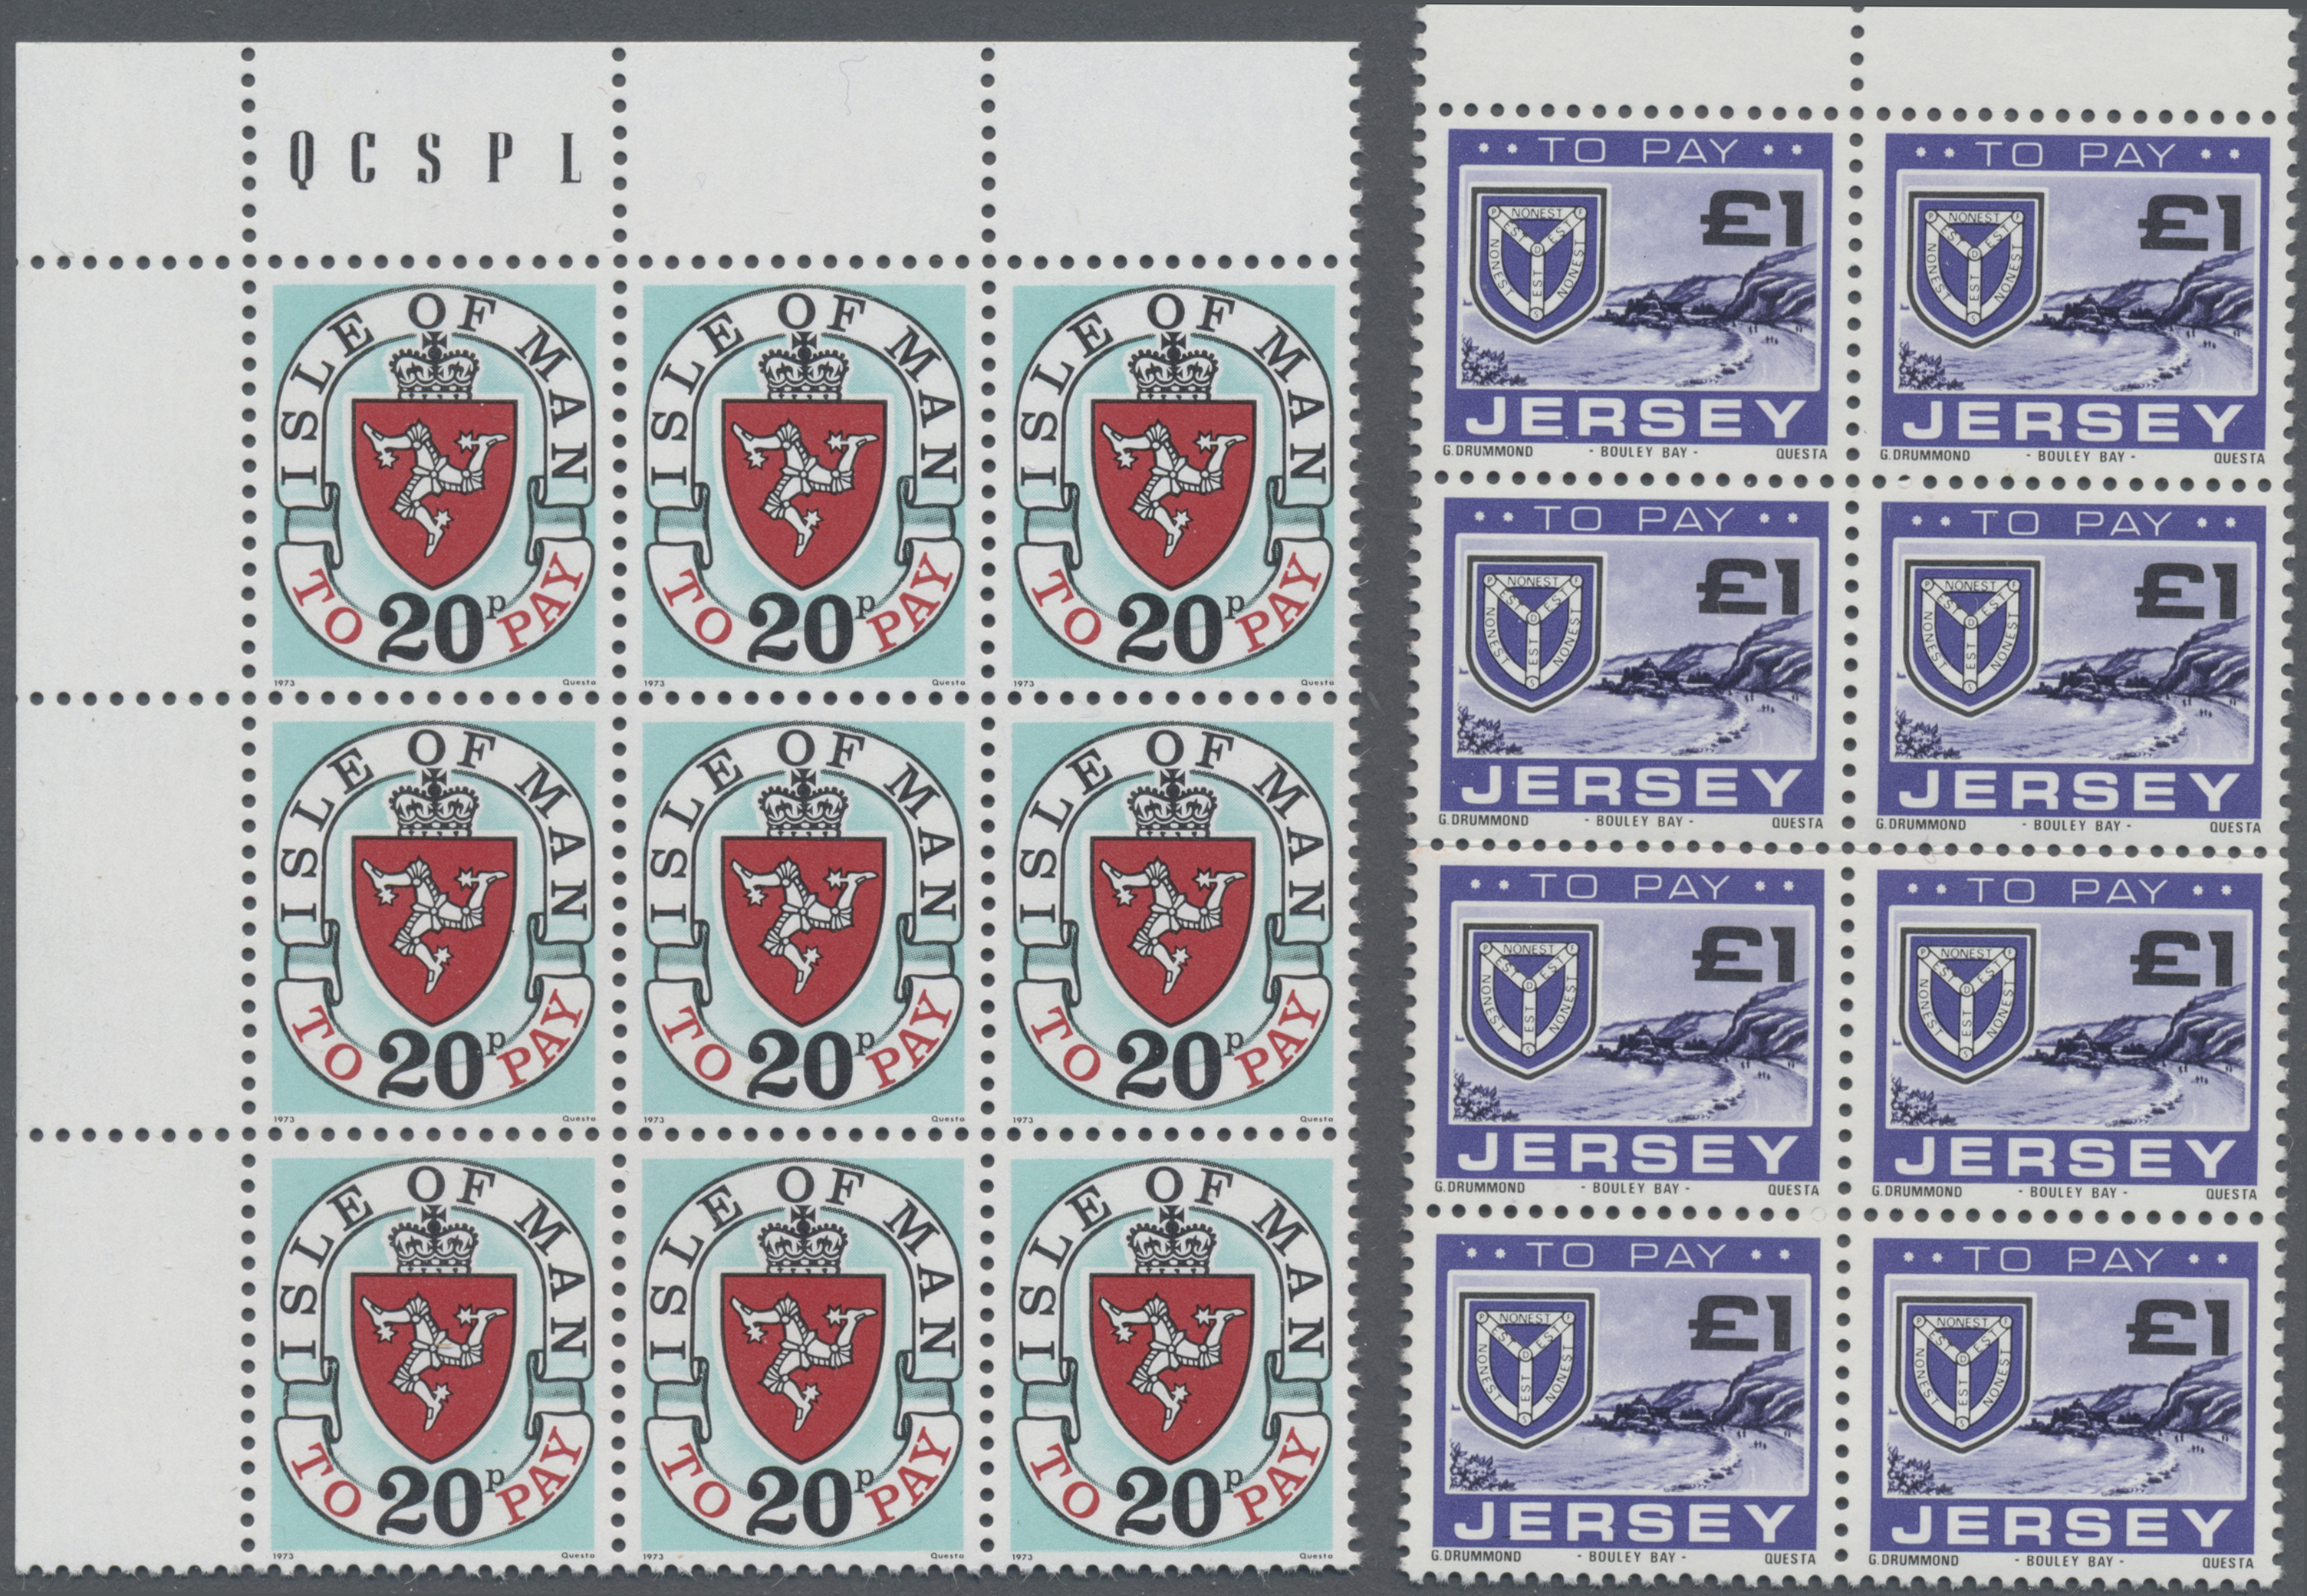 Lot 17097 - großbritannien  -  Auktionshaus Christoph Gärtner GmbH & Co. KG Sale #48 collections Overseas  Airmail / Ship mail & Thematics